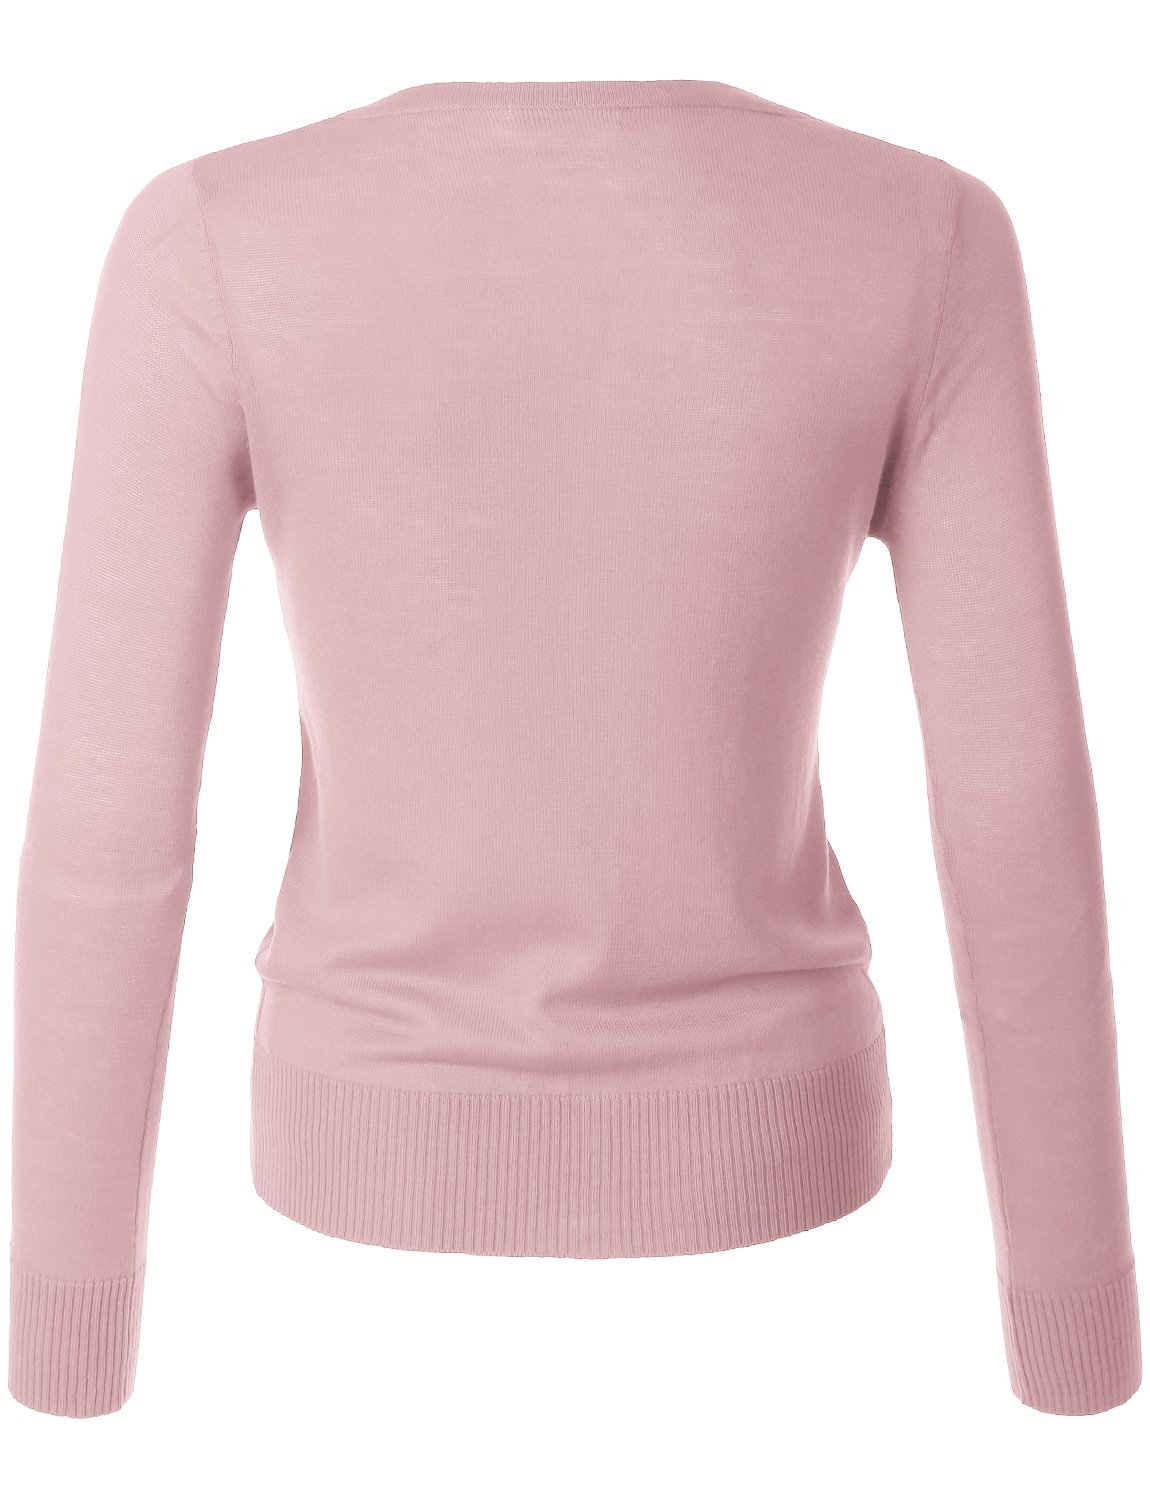 LE3NO Womens Lightweight Round Neck Fine Knit Cardigan Sweater With Stretch by LE3NO (Image #3)